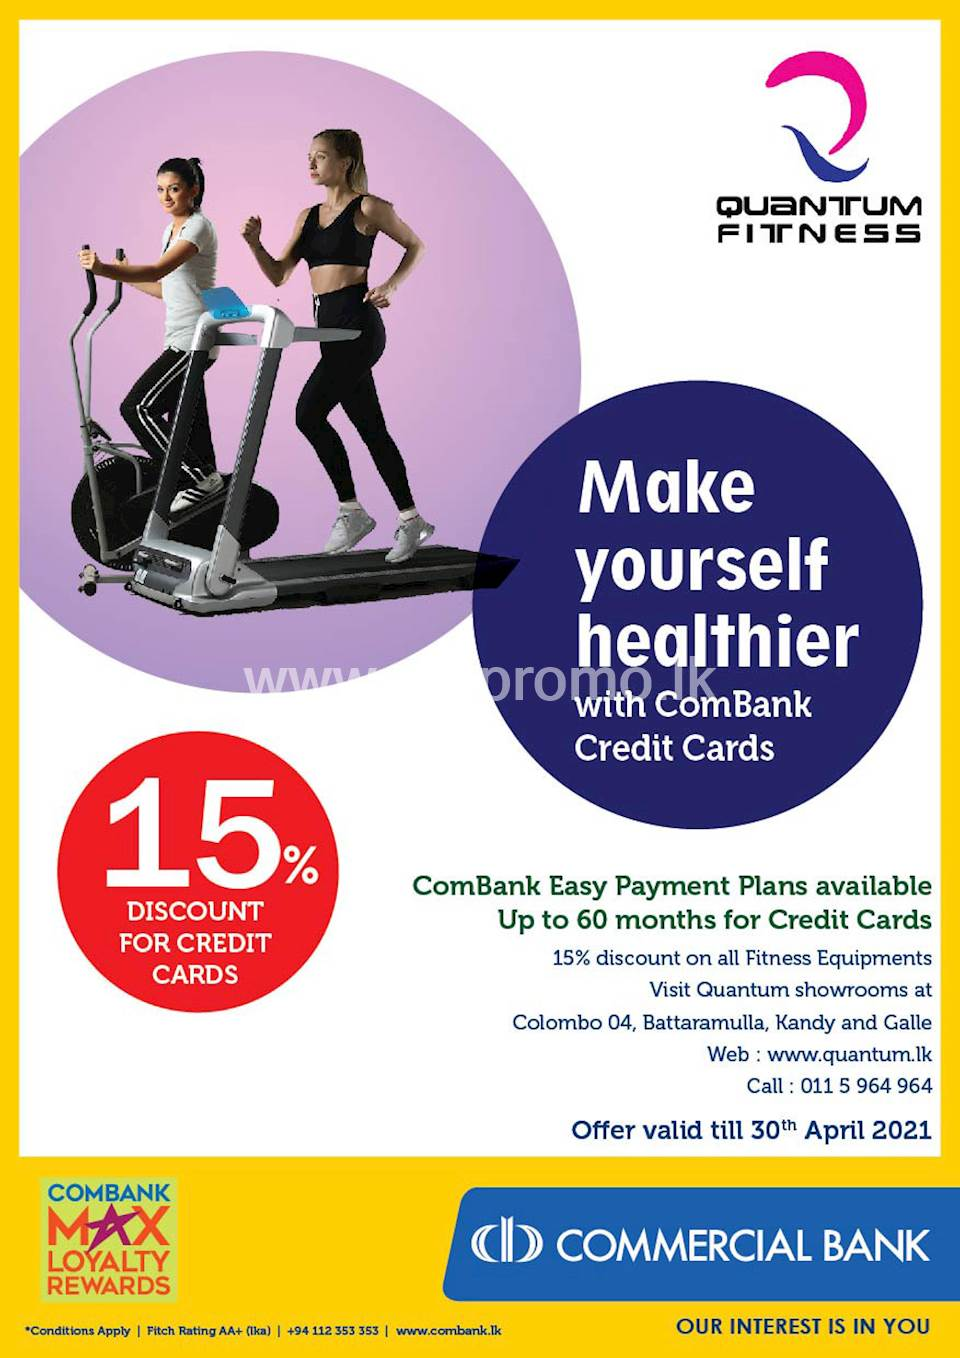 Enjoy 15% Discount for ComBank Credit Cards at Quantum Fitness